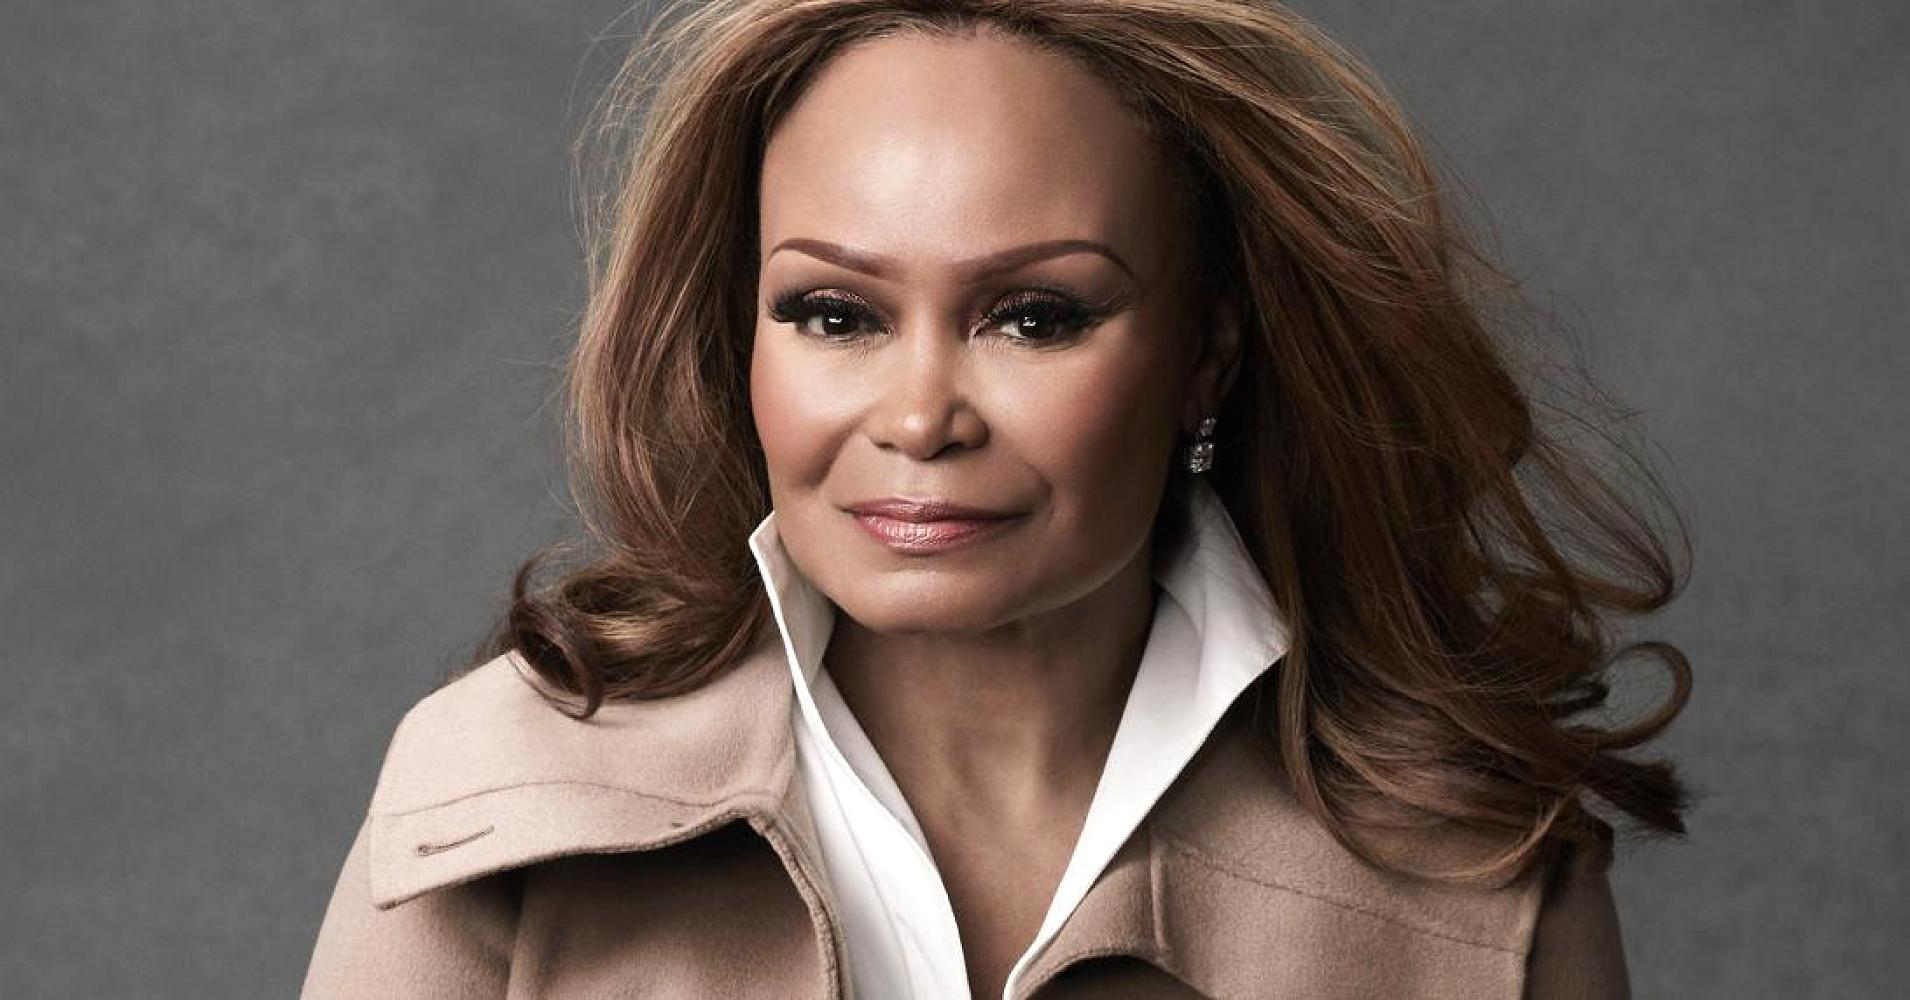 Janice Bryant Howroyd is the first black woman to own a billion-dollar business. Howroyd is an entrepreneur, educator, ambassador, businesswoman, author, and mentor. The Act-1 Group also holds a Minority ownership status, and is a multibillion-dollar international Talent and Talent Technology enterprise operating worldwide.